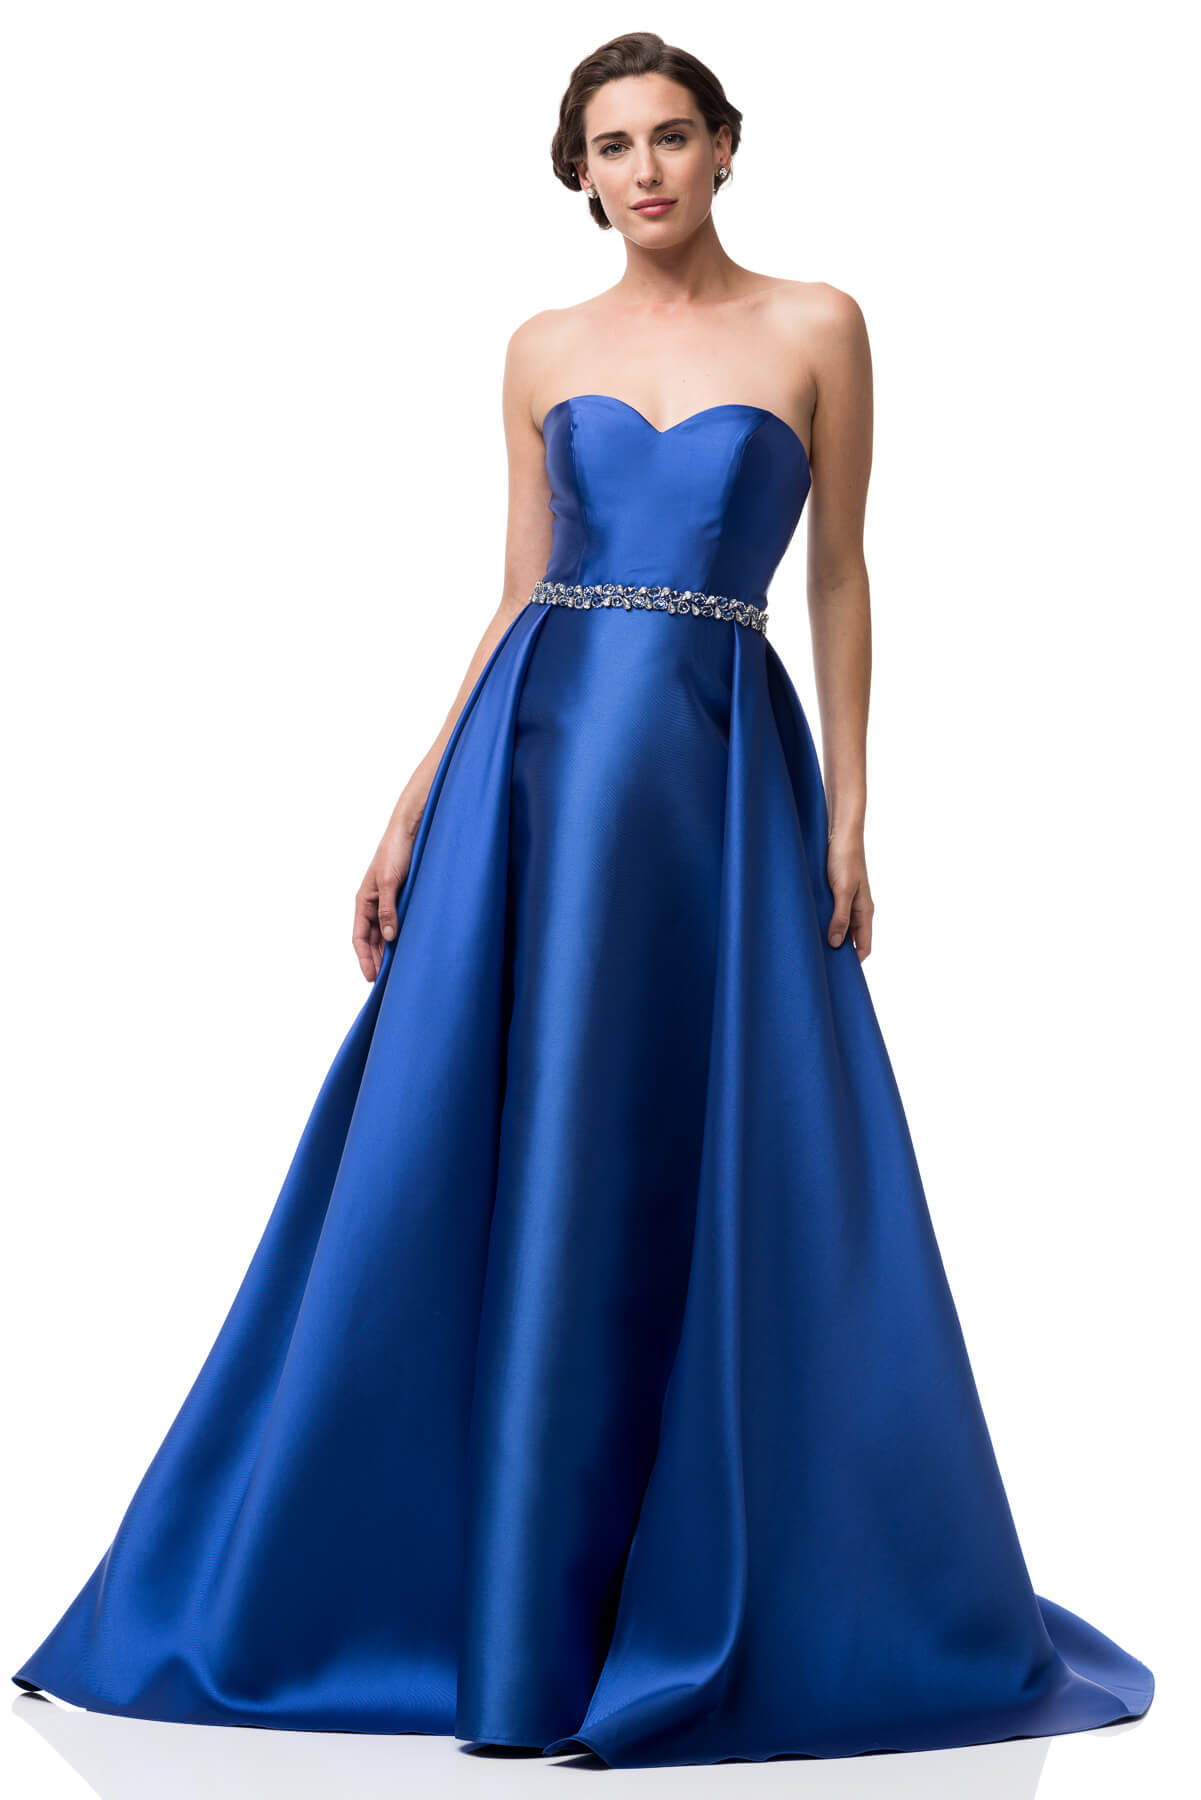 BEADED WAIST SWEETHEART STRAPLESS ROYAL BLUE BALL GOWN | Shangri-La ...